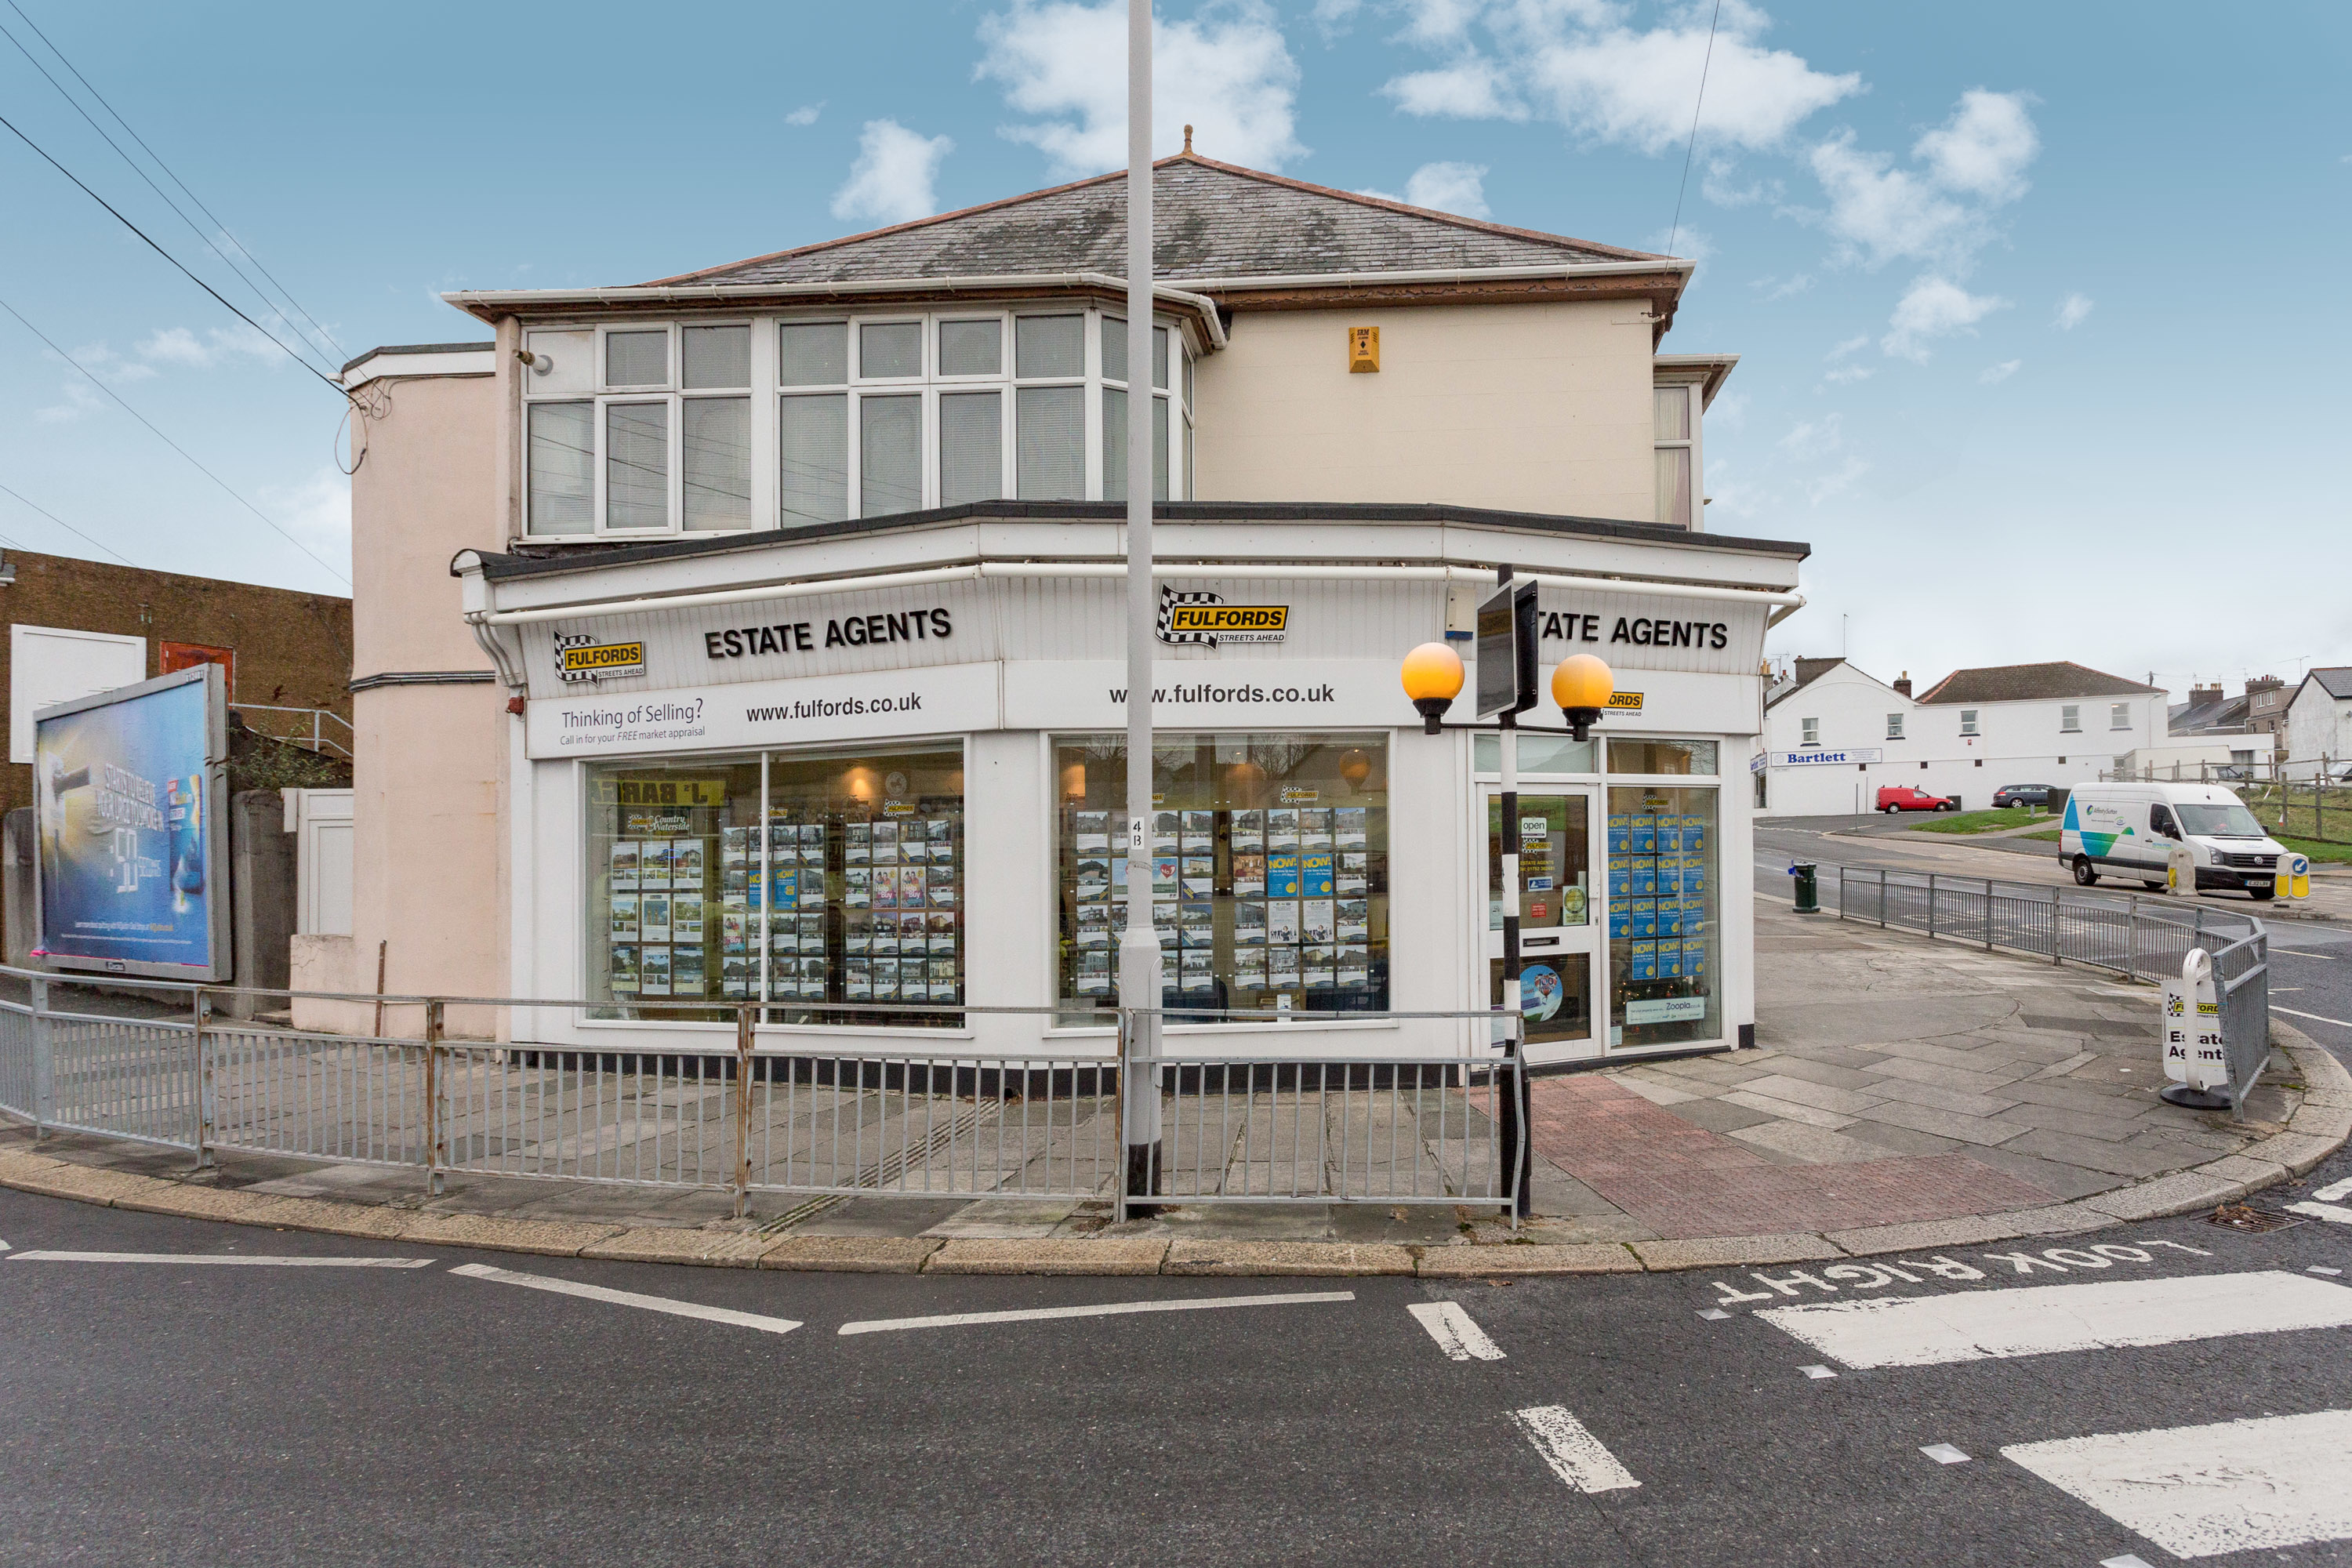 Fulfords Estate Agents In Plymouth Pl5 1nd 192 Com